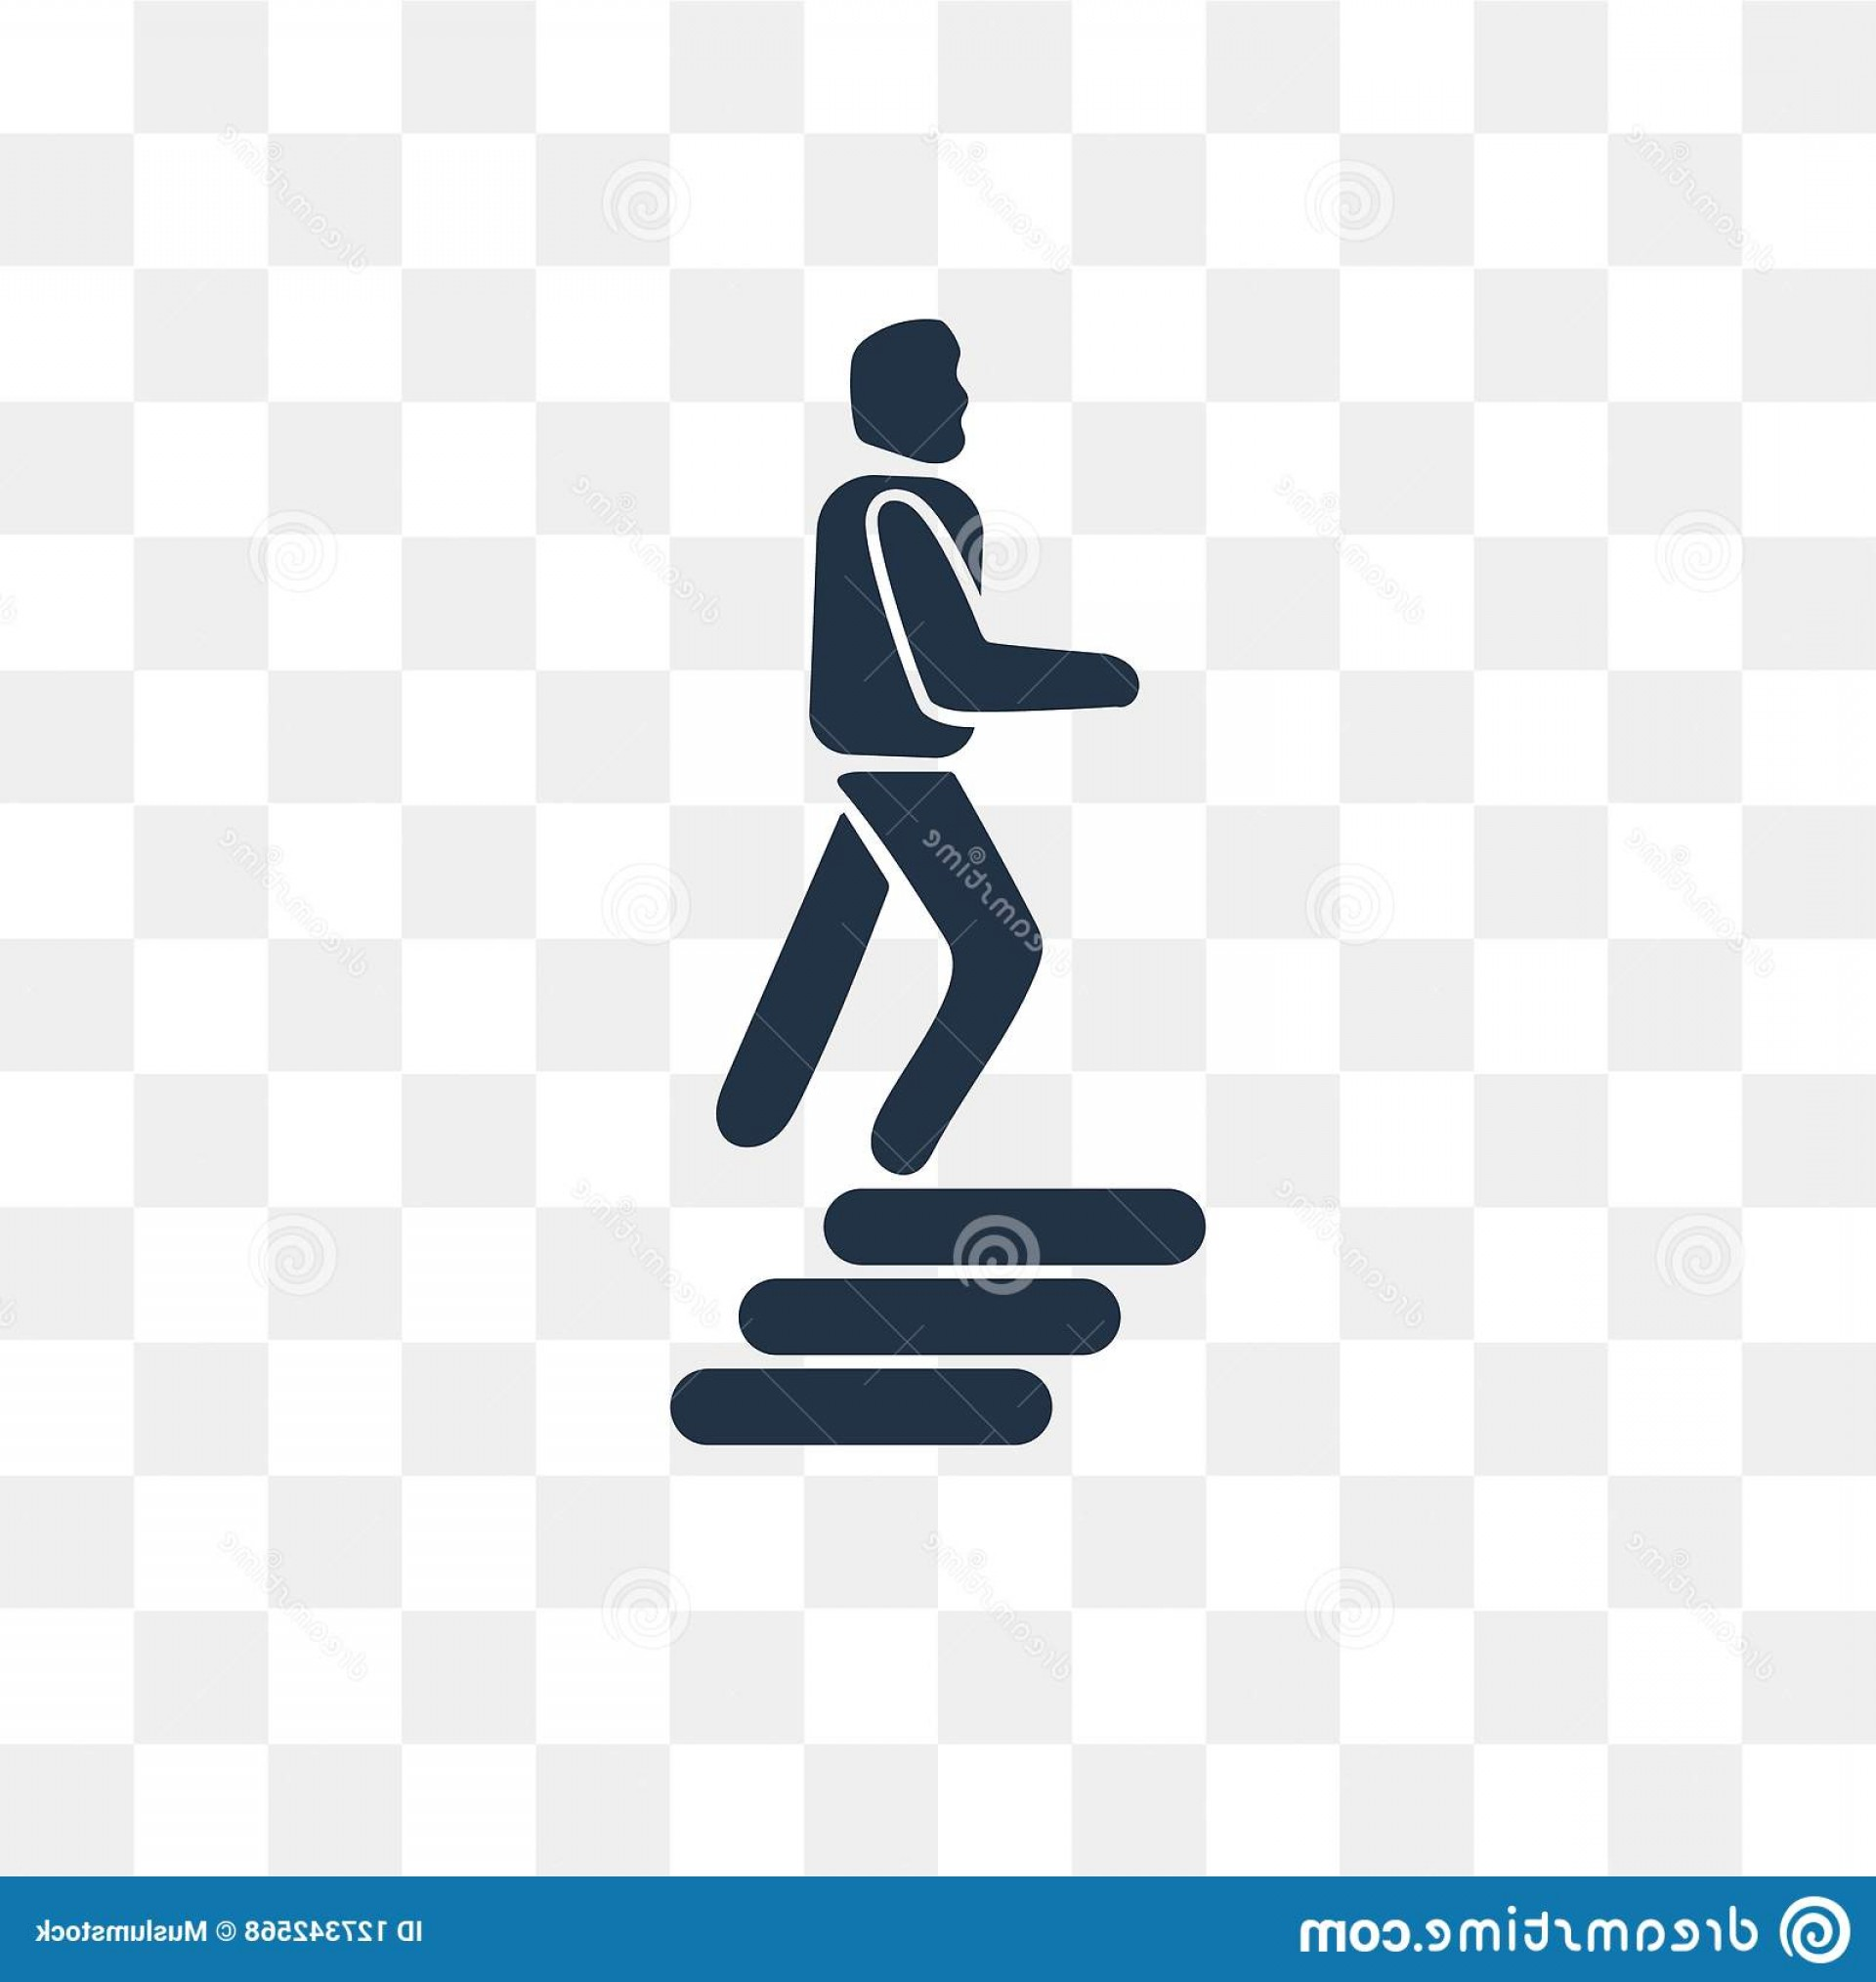 Stair Climb Vector: Climbing Stairs Vector Icon Isolated Transparent Background Transparency Concept Can Be Used Web Mobile Image